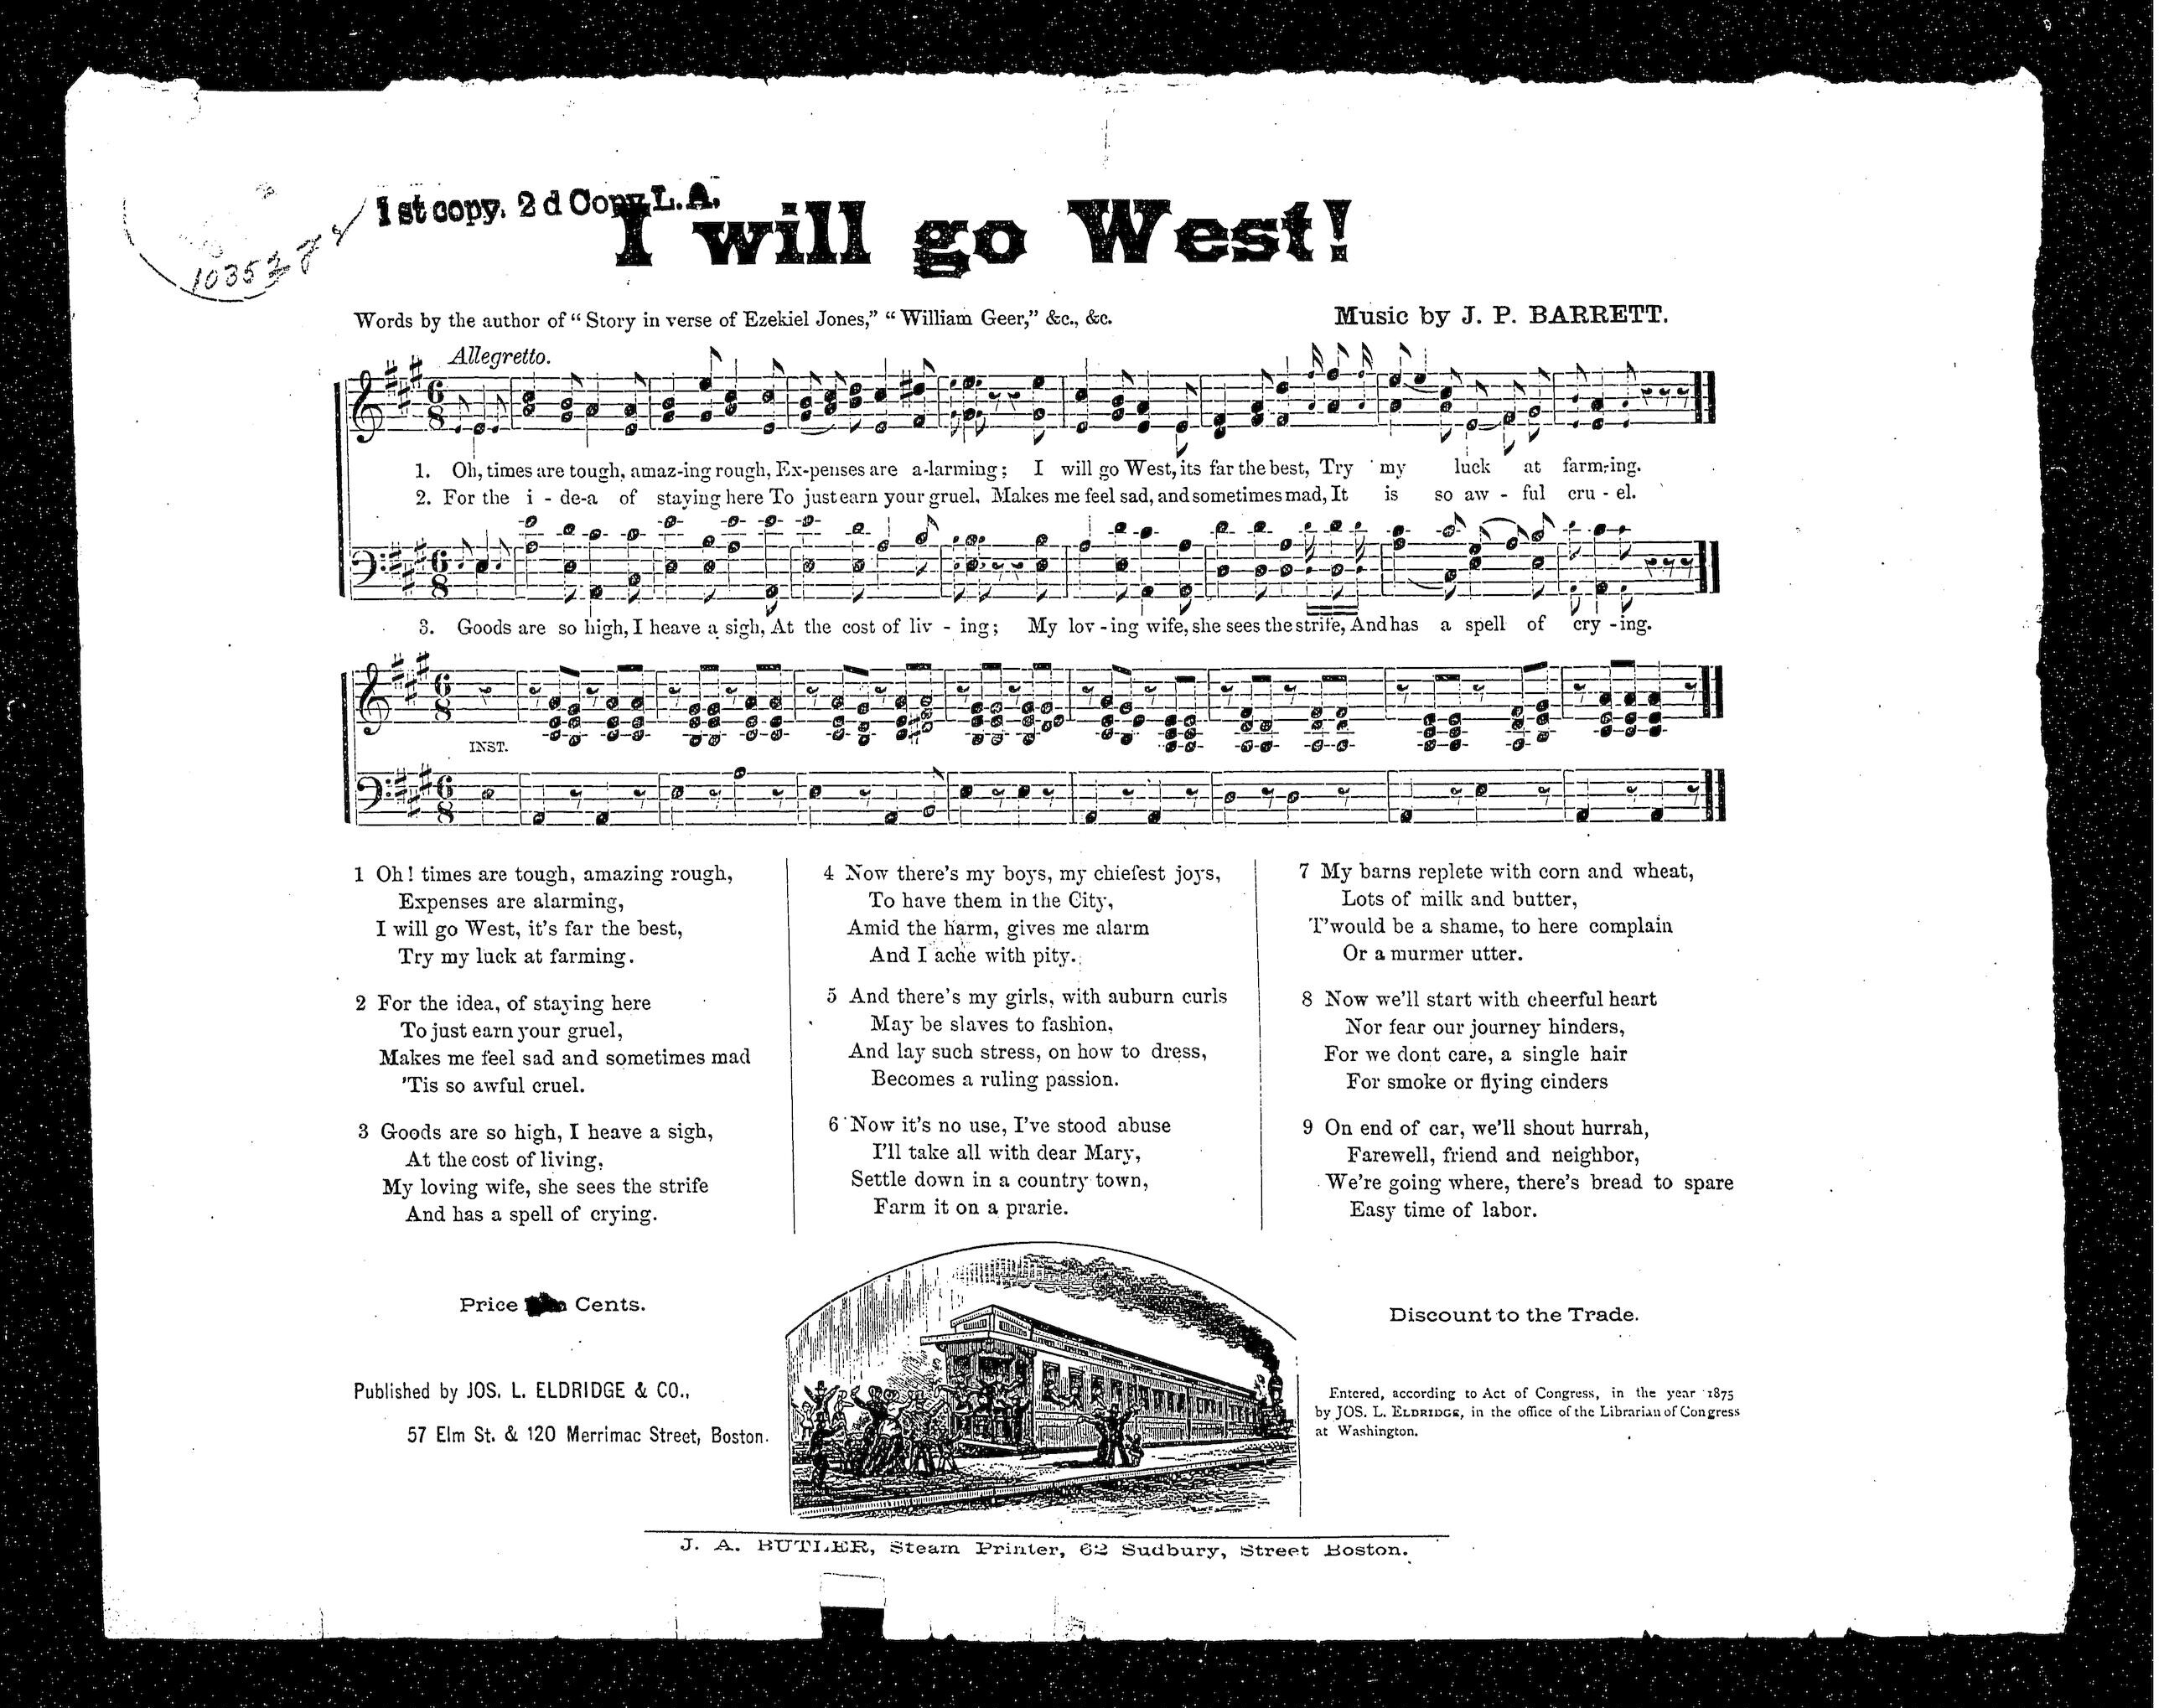 I Will Go West sheet music_Library of Congress_